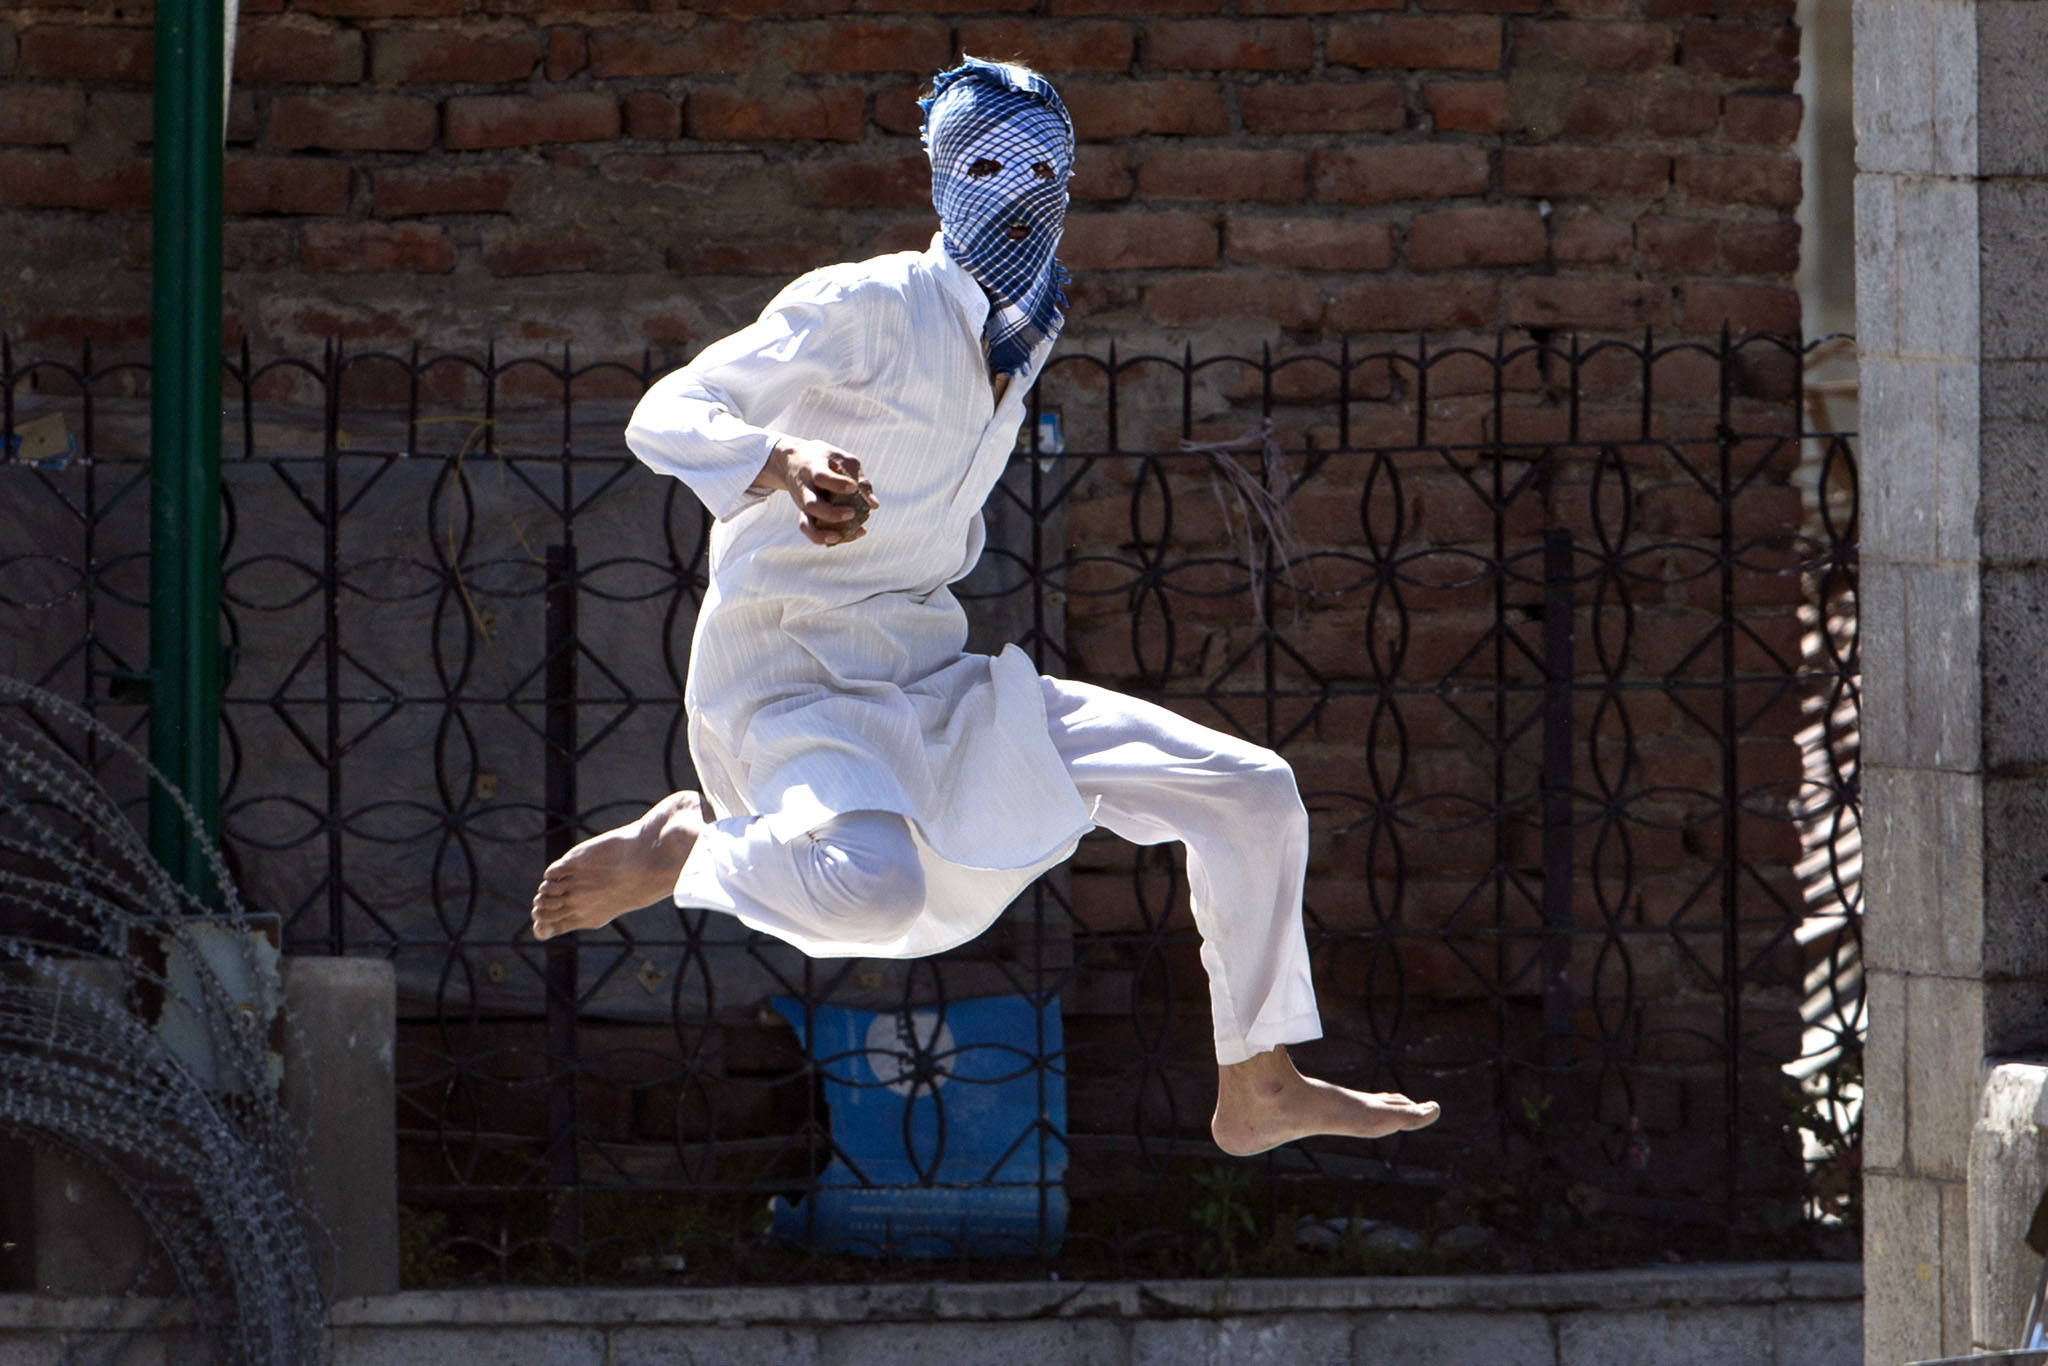 A Kashmiri masked Muslim protester jumps in the air to avoid stones thrown at him by Indian police during a protest in Srinagar, Indian controlled Kashmi